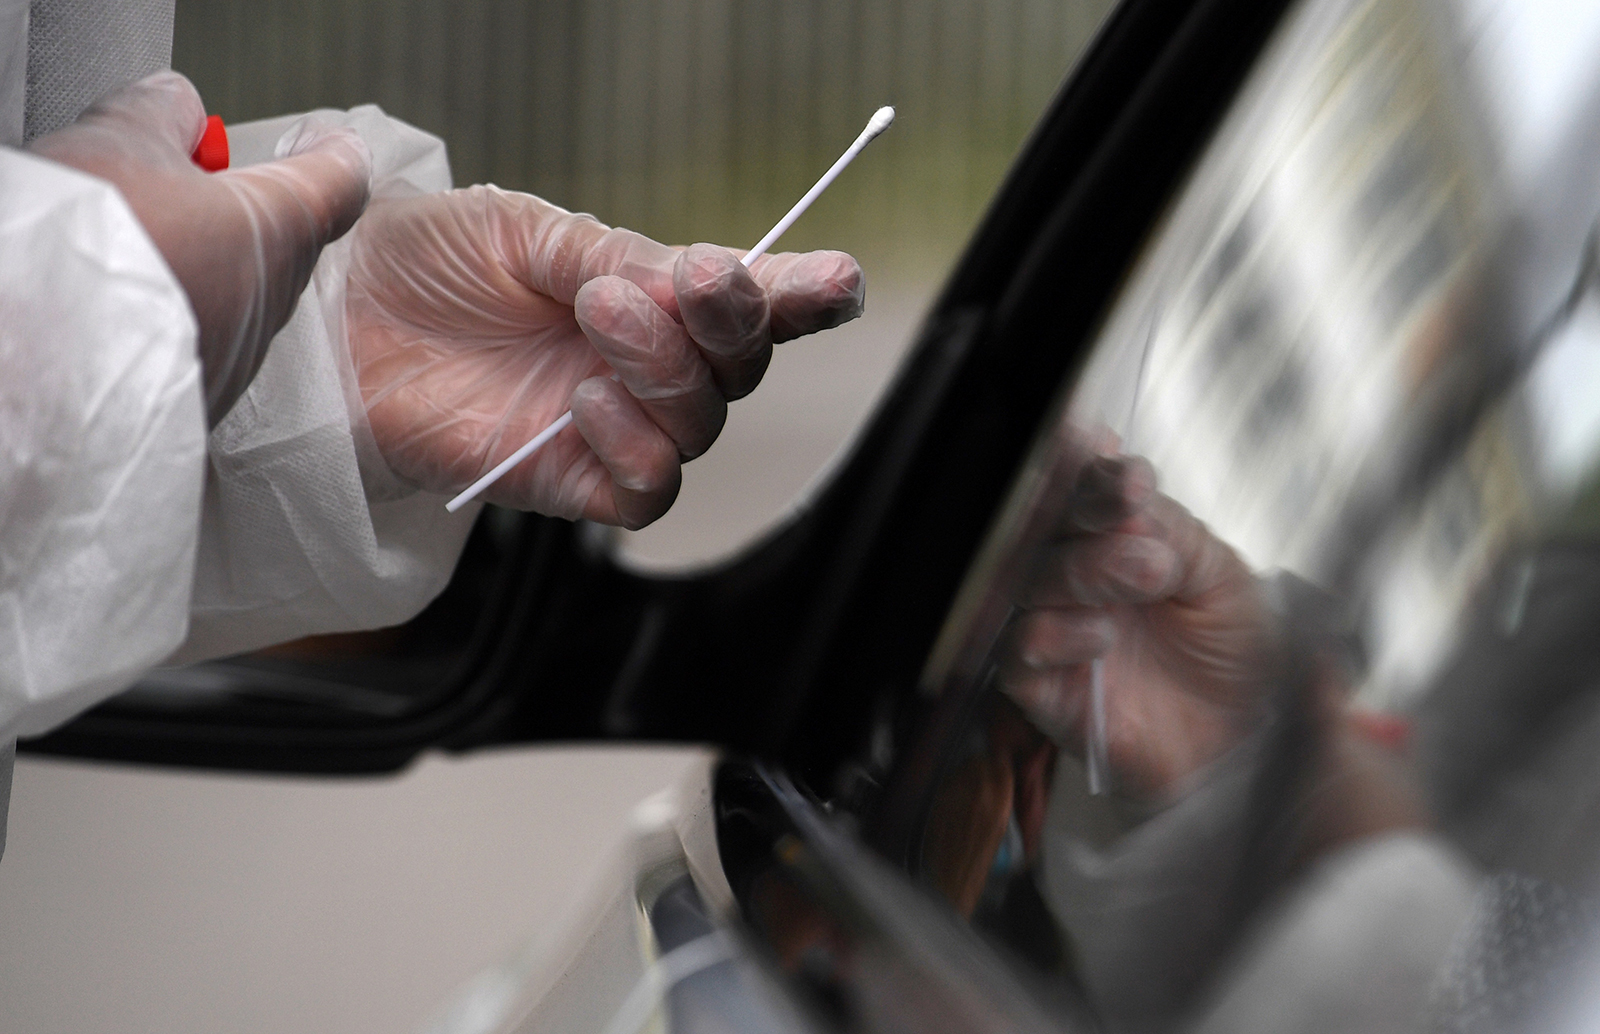 A member of medical staff holds a nasal swab as he collects samples from a person at a Covid-19 drive-in test in Brest, France, on Wednesday, July 31.